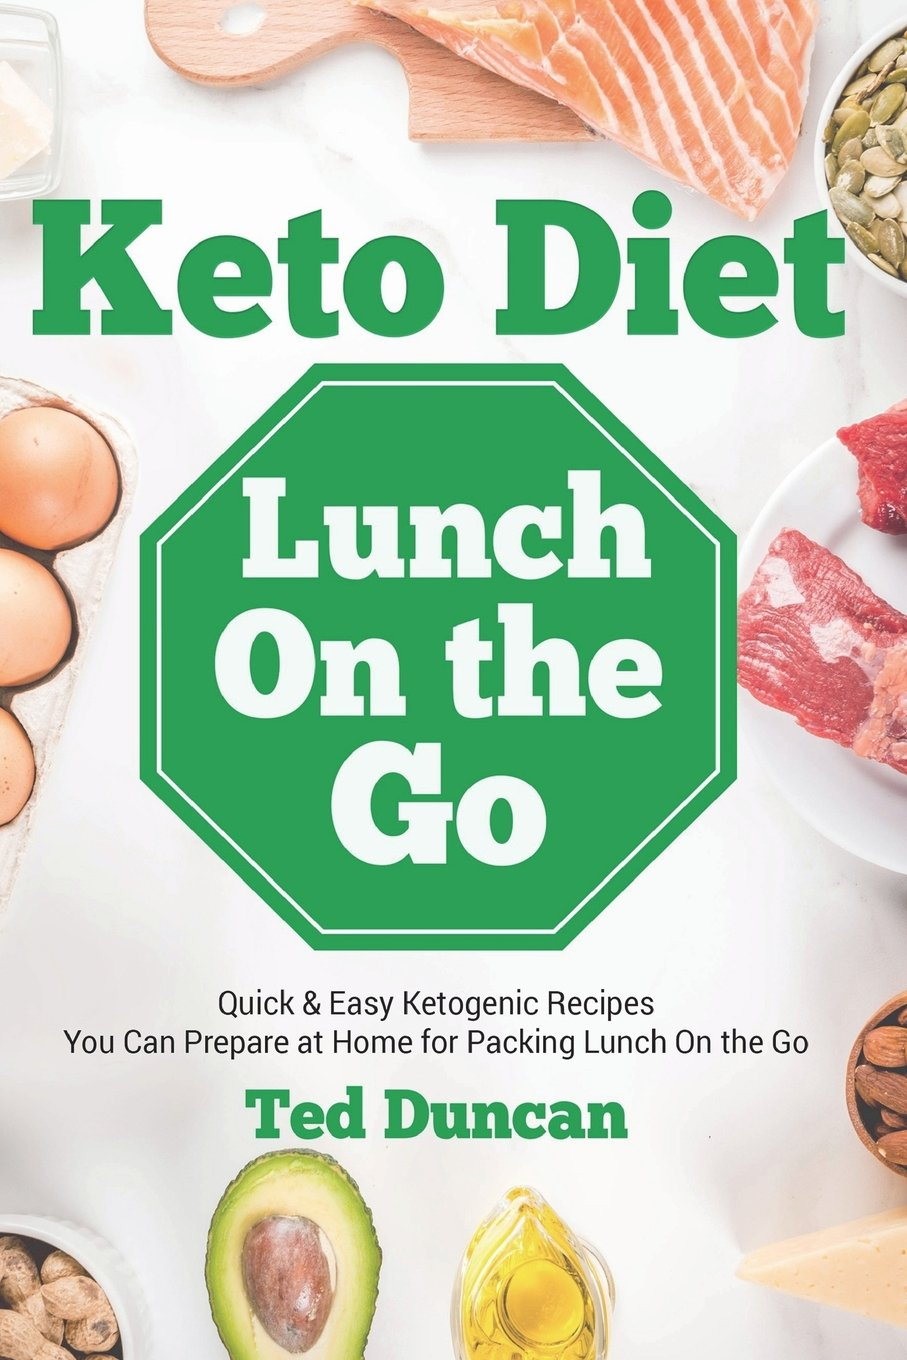 Amazon Com Keto Diet Lunch On The Go Quick Easy Ketogenic Recipes You Can Prepare At Home For Packing Lunch On The Go 9781720379010 Duncan Ted Books